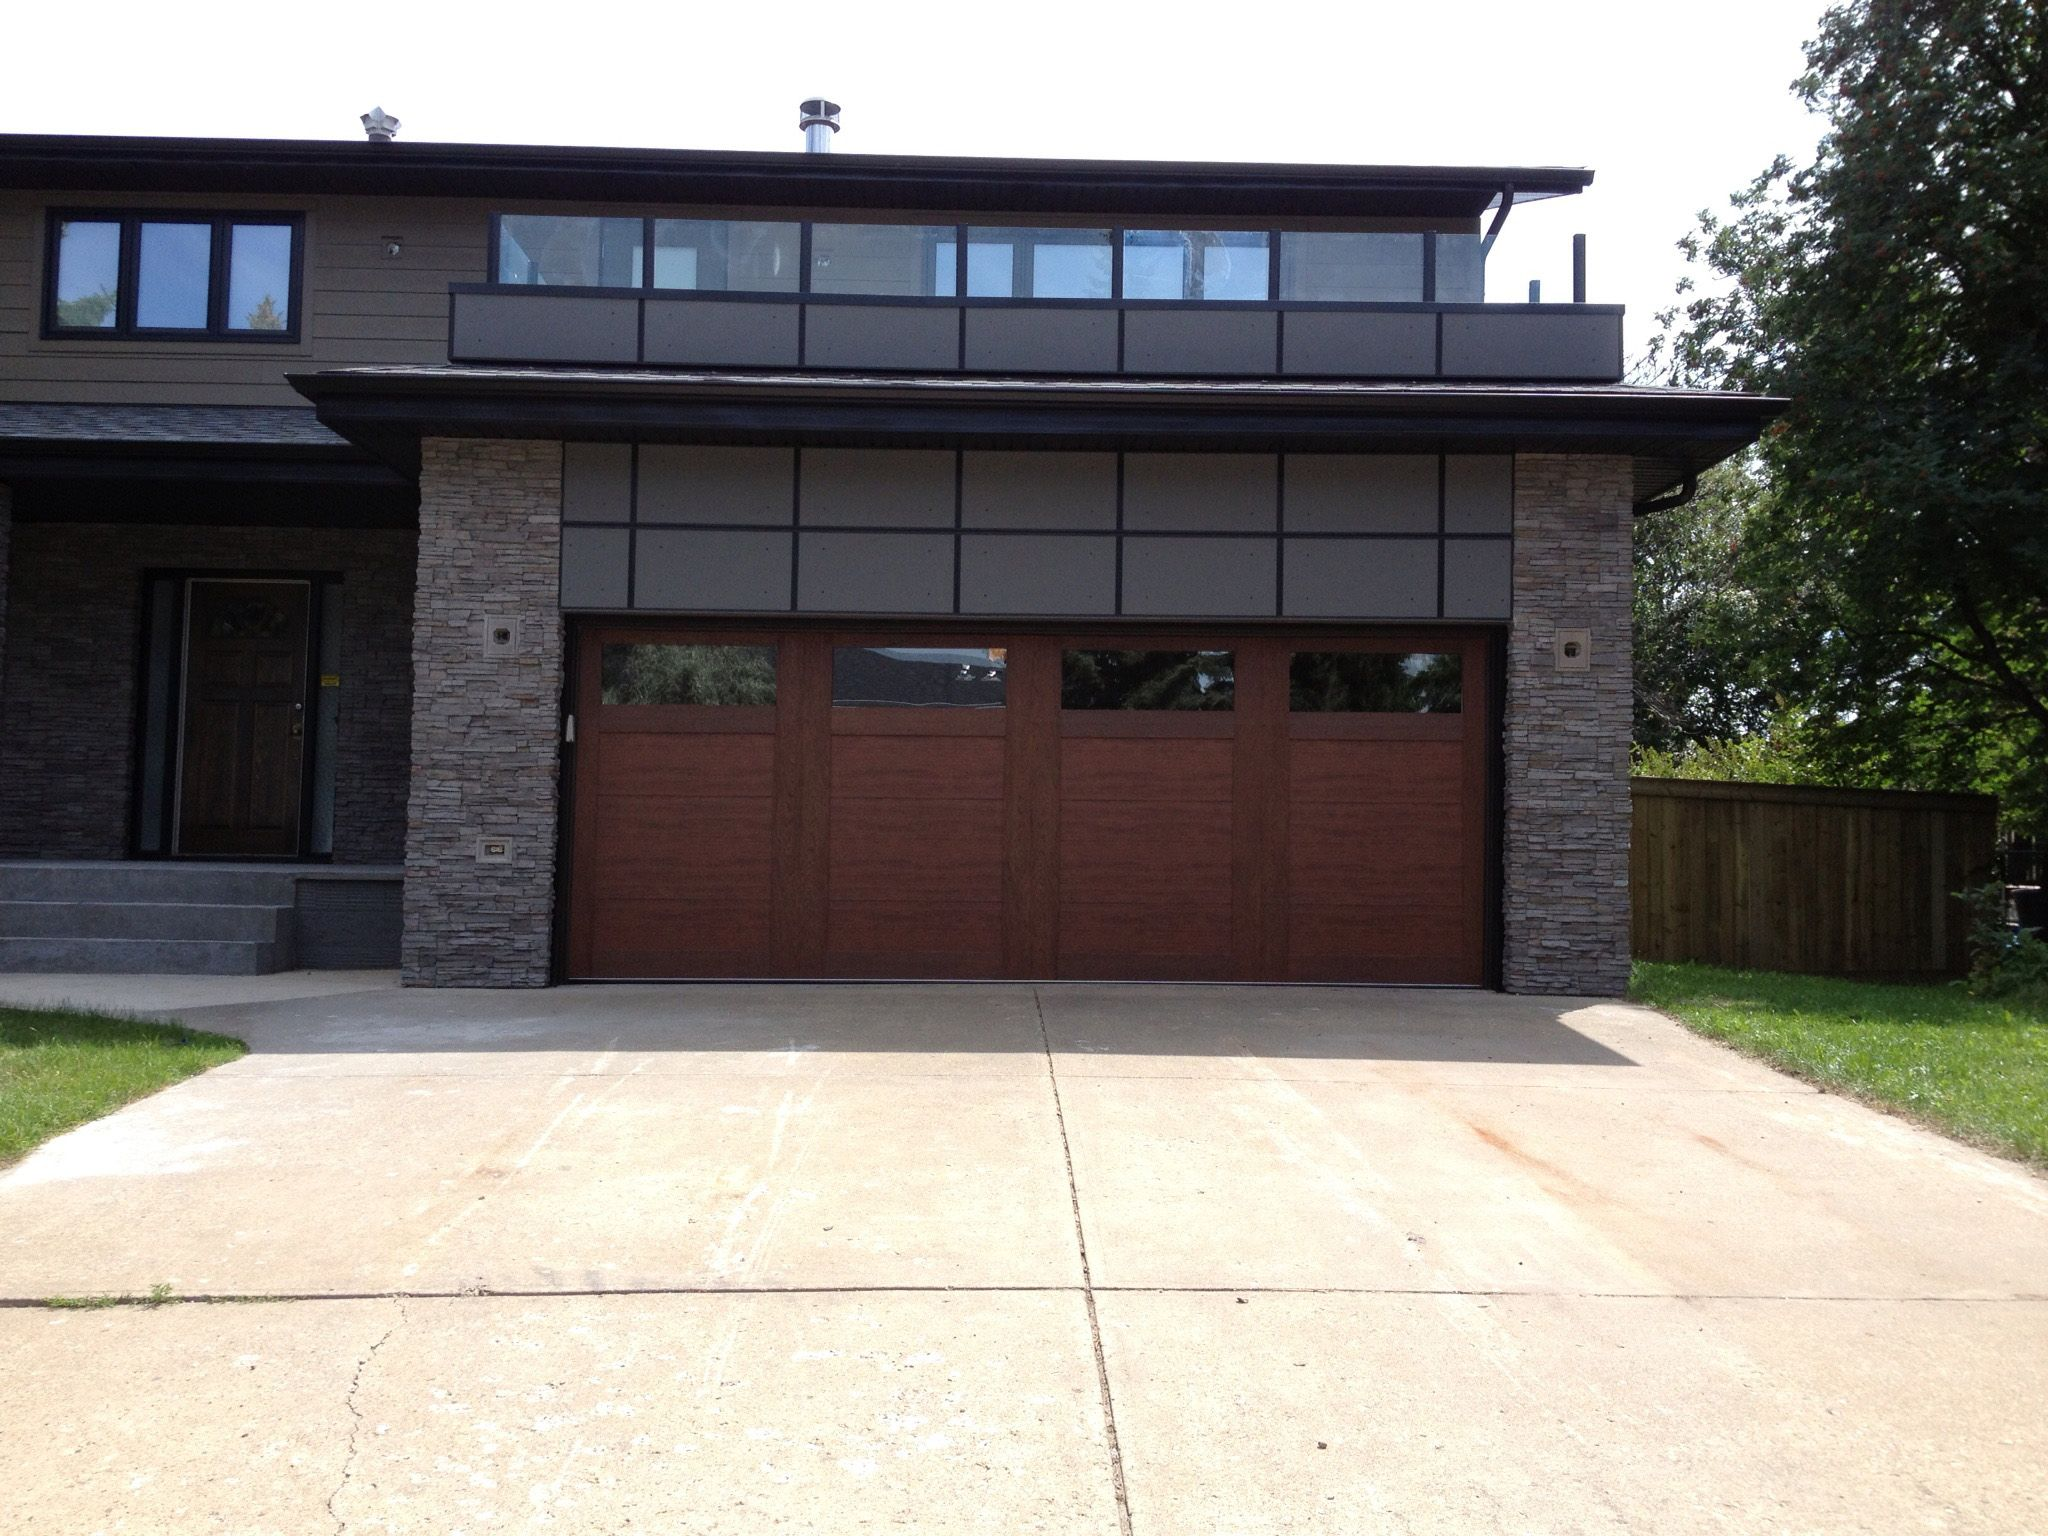 Canyon Ridge Ultra Grain Faux Wood Garage Doors Garage Doors Contemporary Garage Doors Garage Door Styles